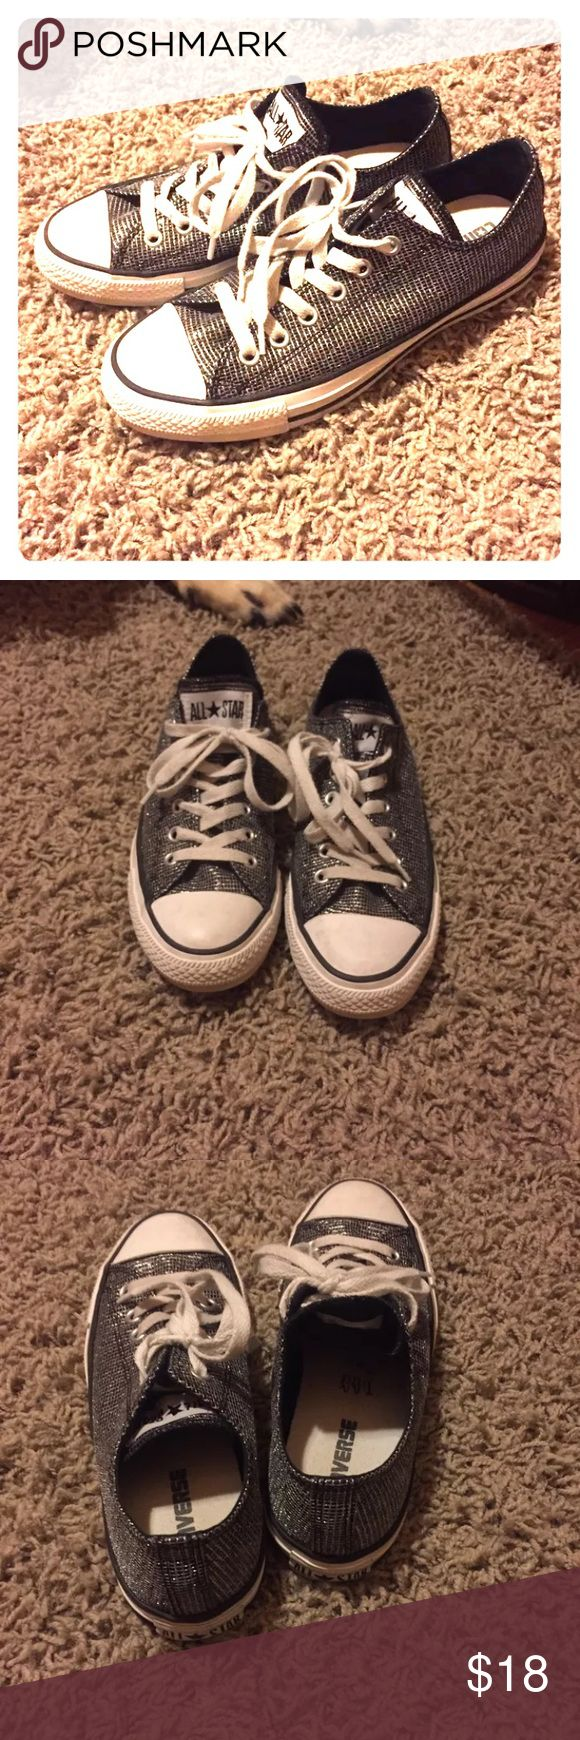 Converse Low top Rarely worn! Super cute. These are black with silver embroidered into it. Converse Shoes Sneakers